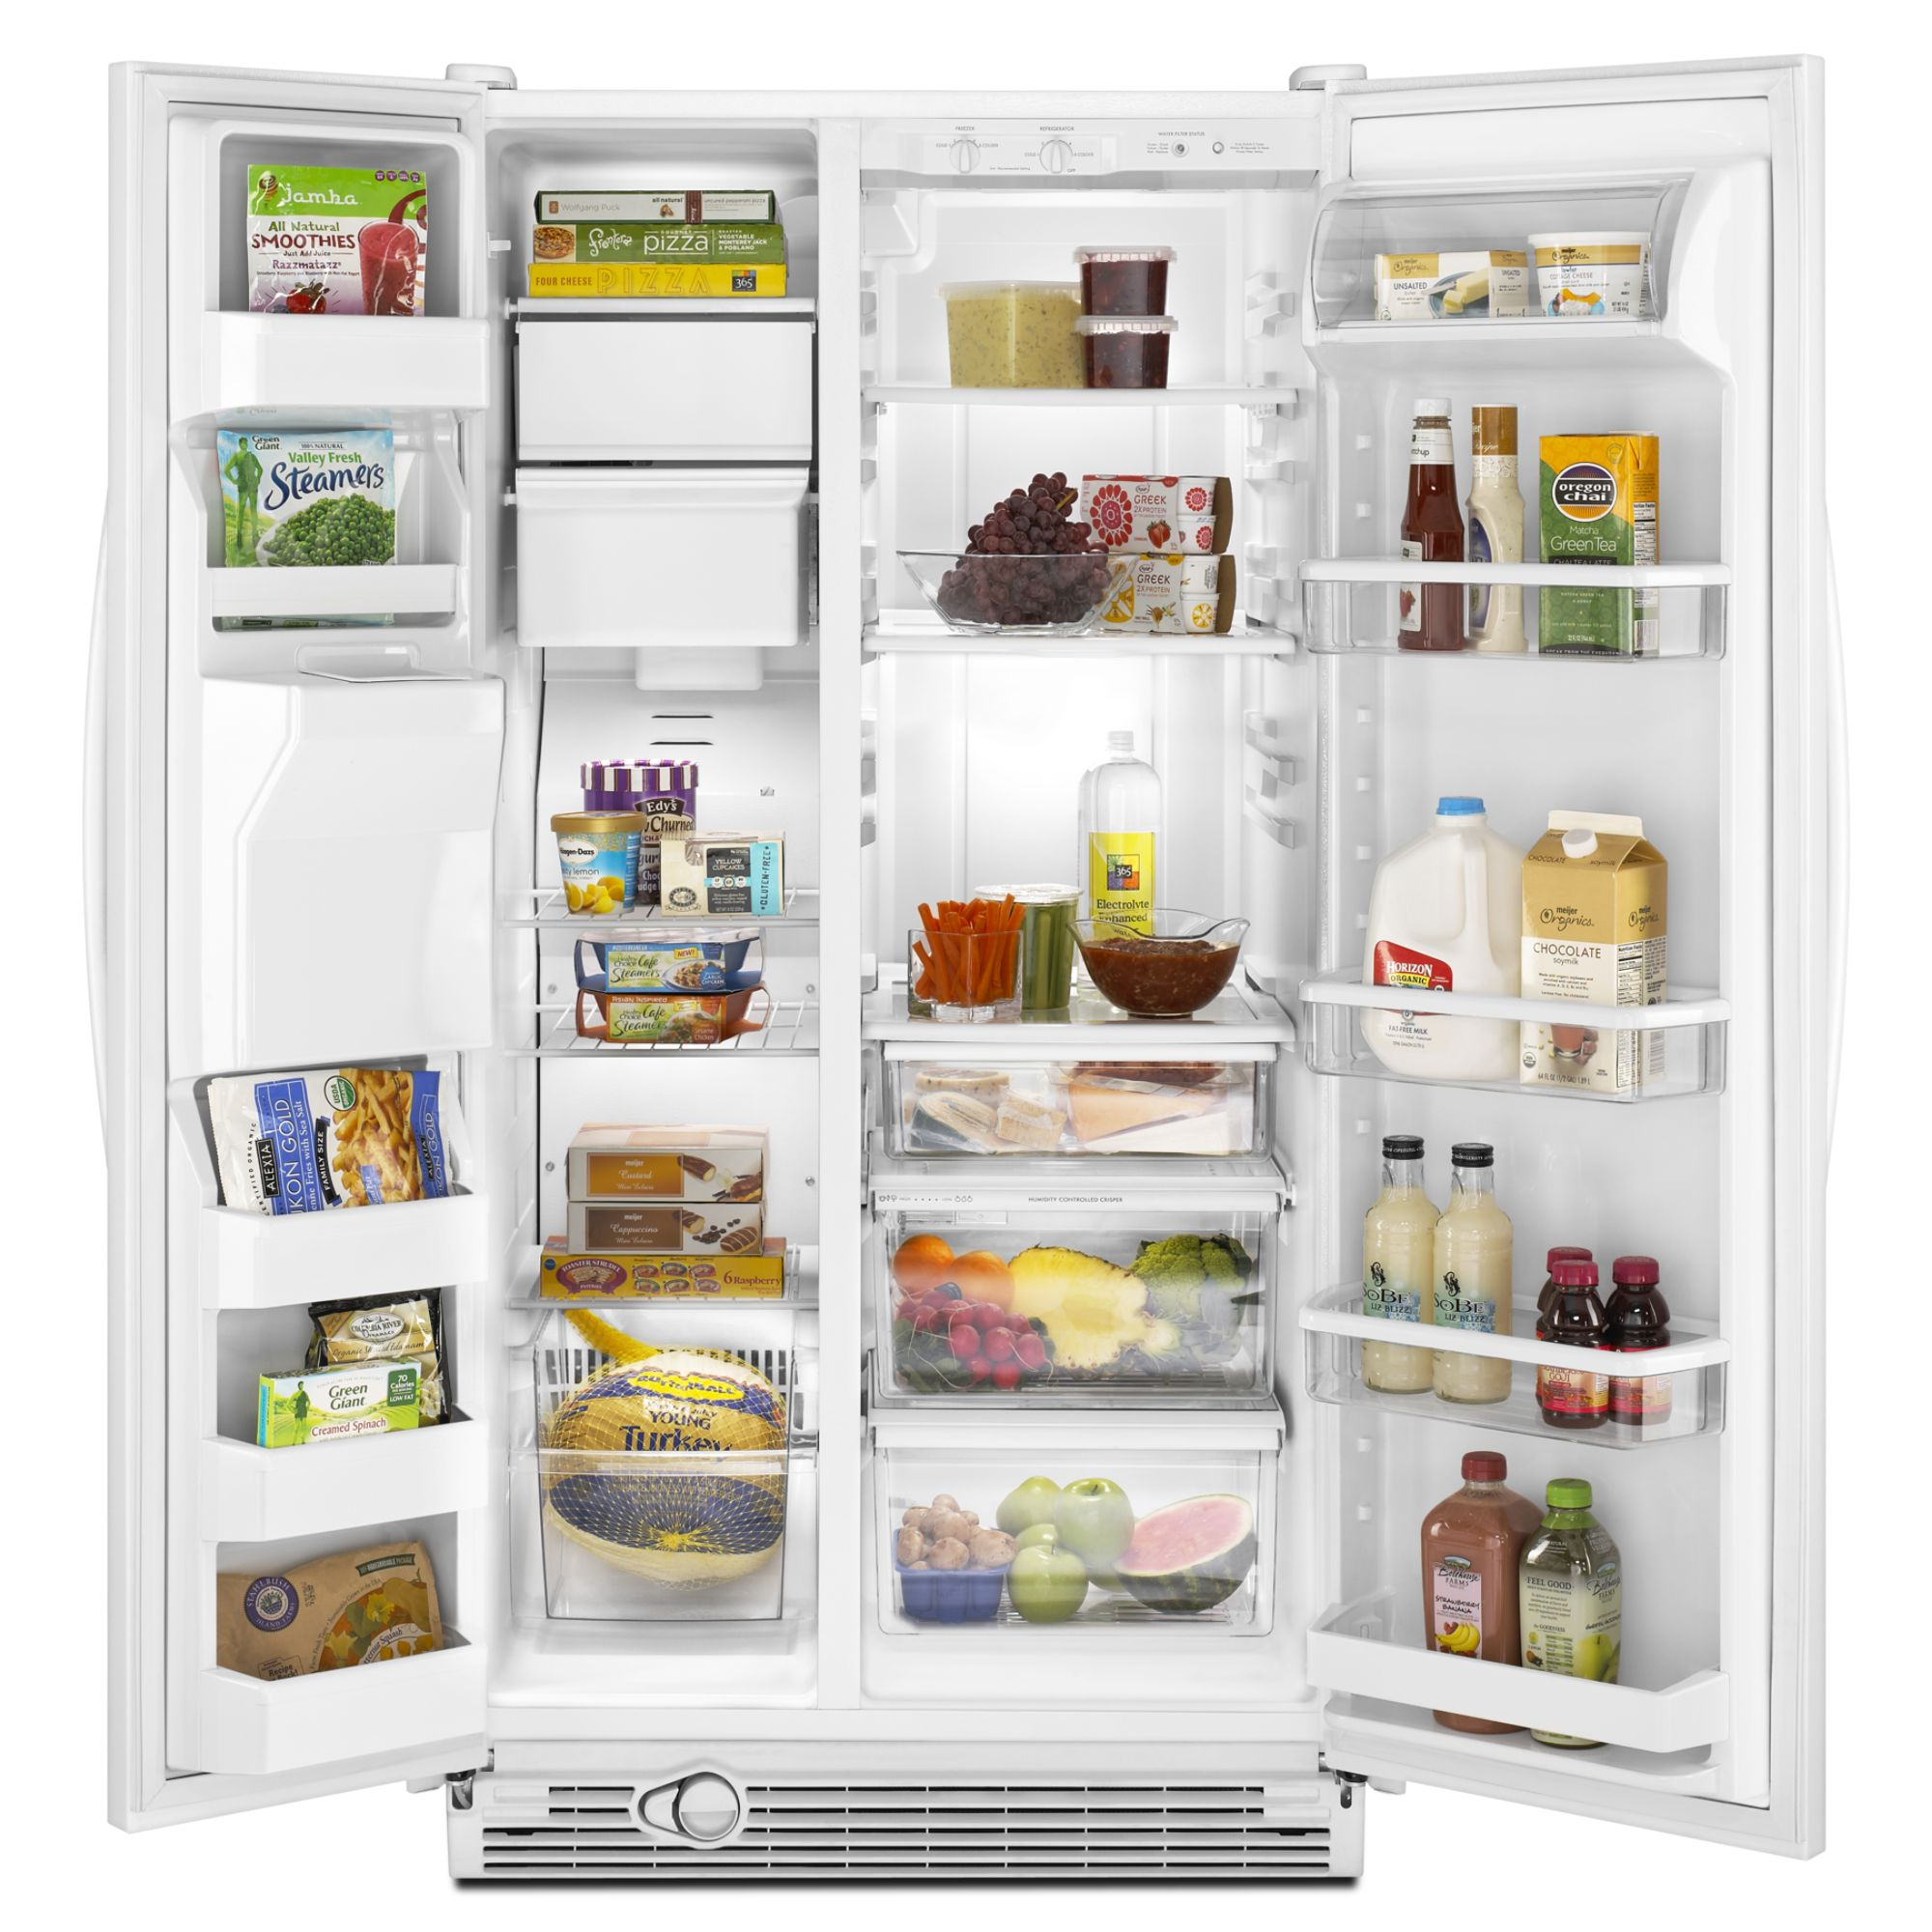 Kenmore 25.1 cu. ft. Side-by-Side Refrigerator w/ Ice & Water Dispenser - White